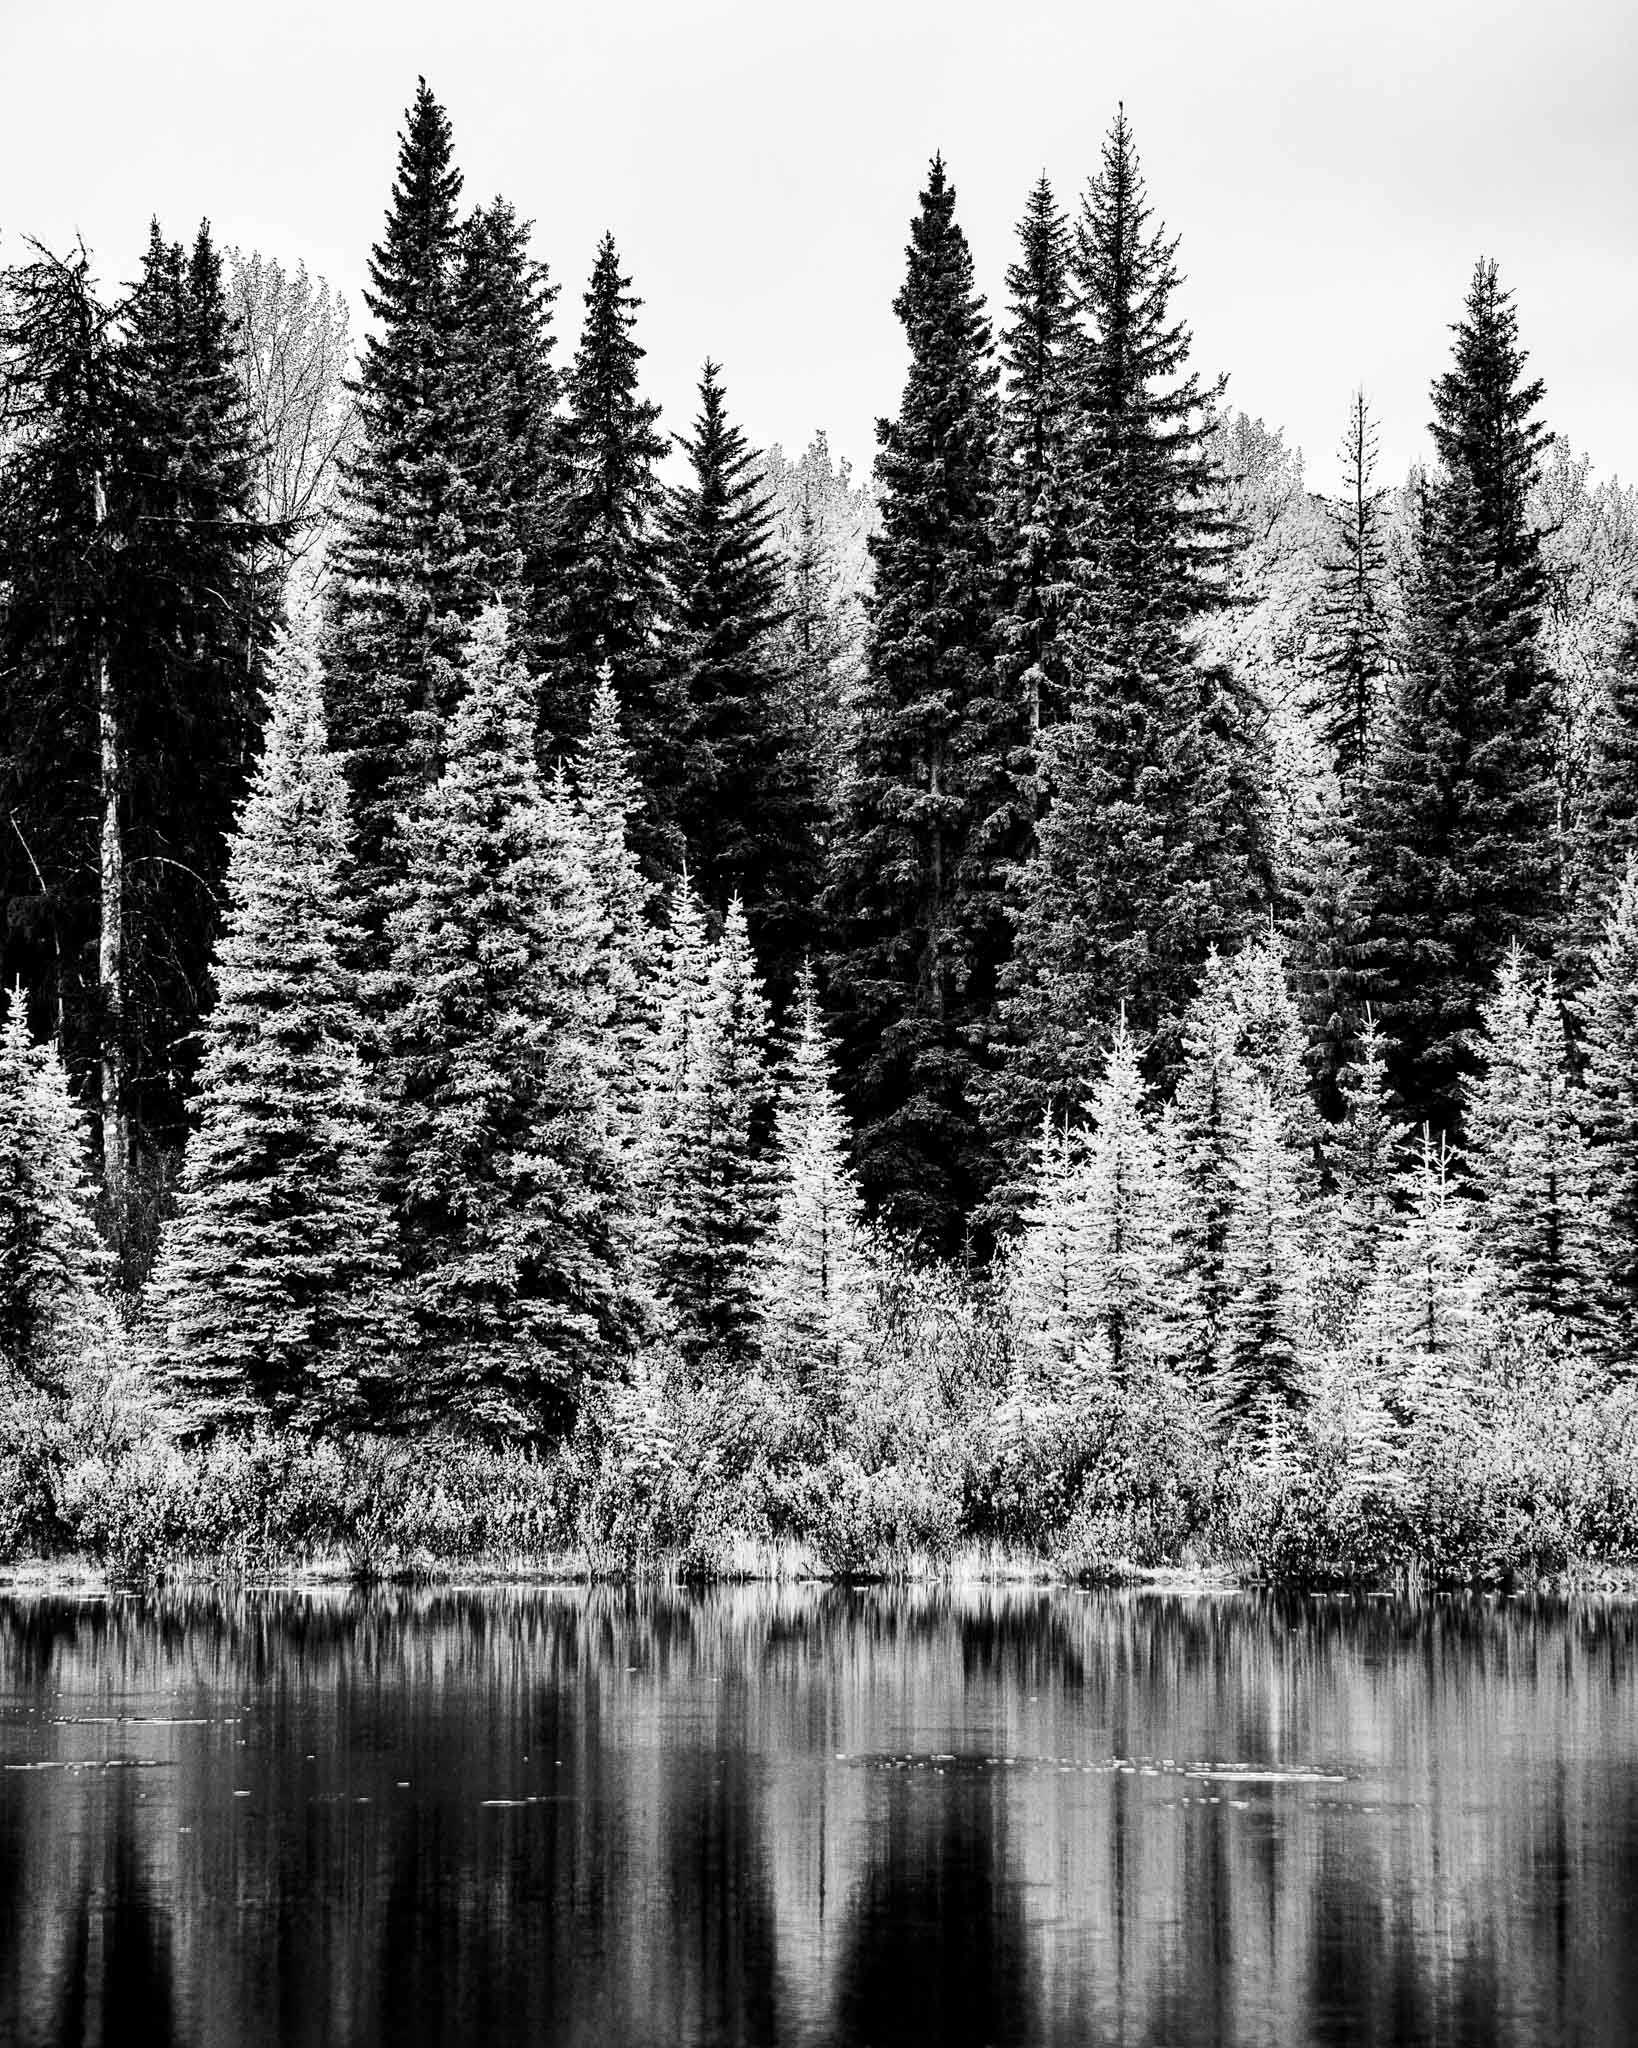 Montana Lake in BW - Larry Citra